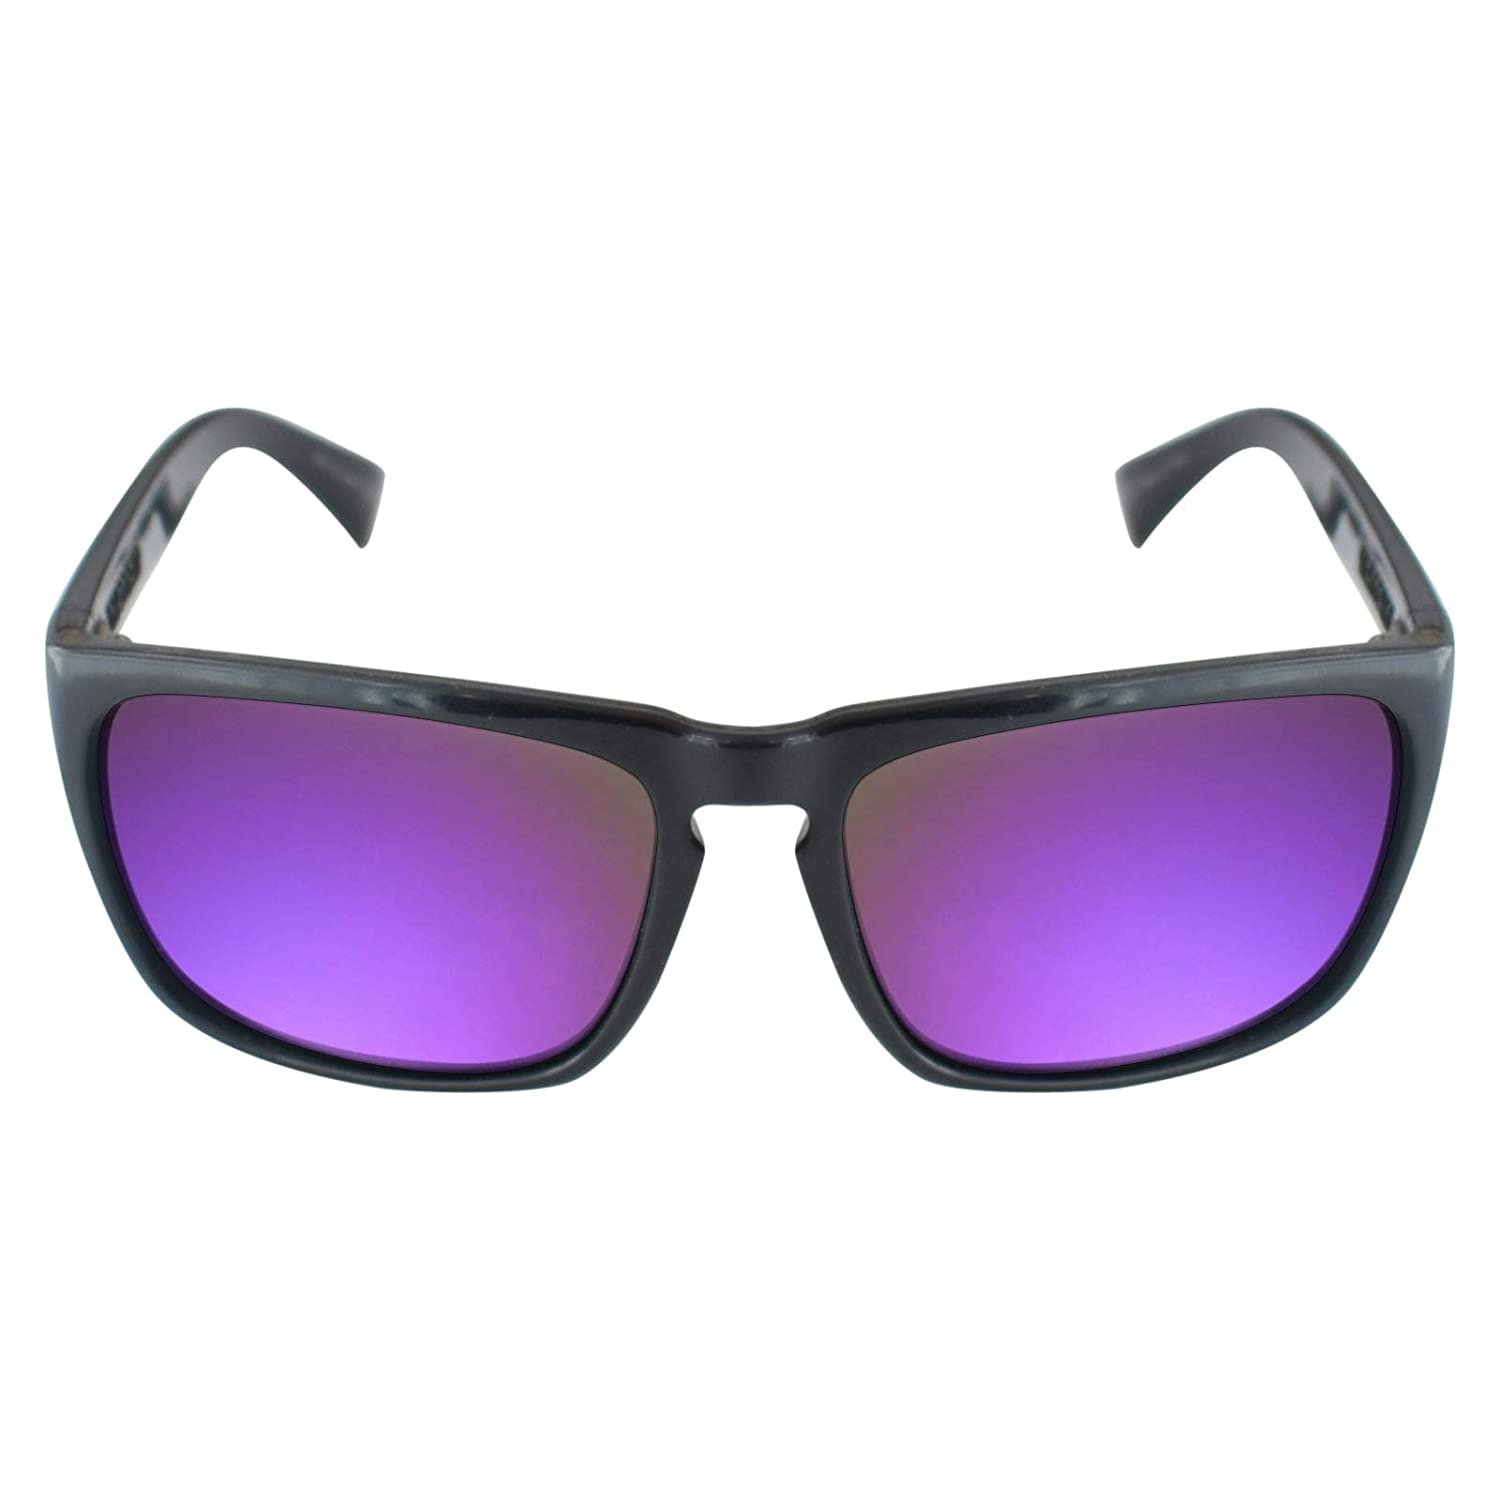 9e039c23a4c MRY POLARIZED Replacement Lenses for Electric Knoxville XL Sunglasses  MryLens EC03KBI14B